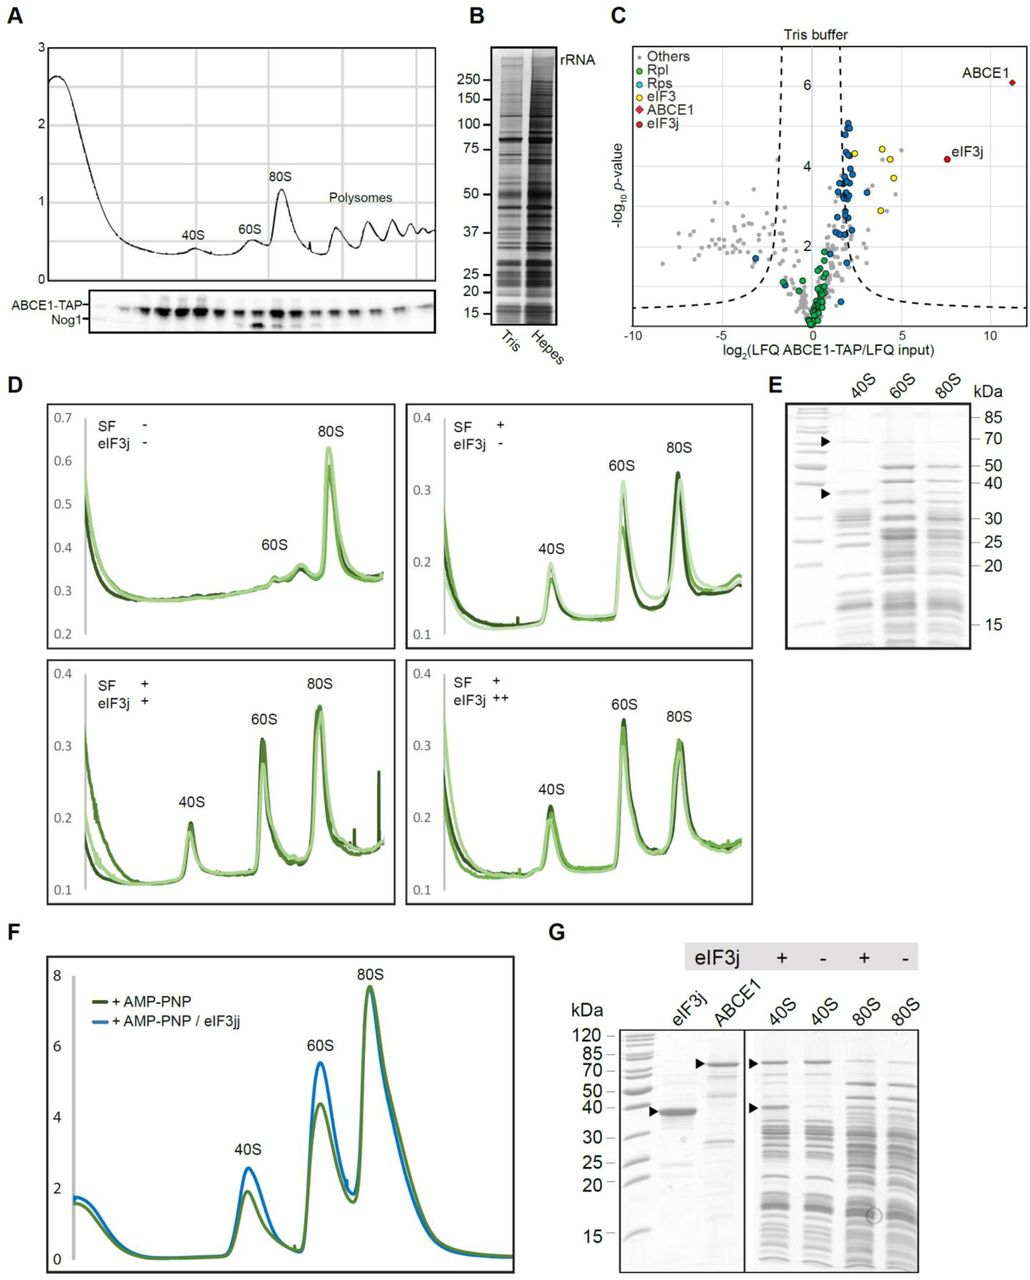 """Enrichment of ABCE1 and eIF3j on 40S complexes and assessment of their role in splitting of 80S ribosomes (A) Total cellular extracts from yeast cells expressing ABCE1-TAP were separated on a sucrose gradient (10–50%) by ultracentrifugation. Proteins of each fraction were analyzed by Western blot using a PAP antibody for the detection of the ABCE1-TAP fusion protein and anti-Nog1 antibody to mark the 60S fraction. (B) Silver stained NuPAGE gel showing elution from affinity purification using ABCE1-TAP performed in Tris or Hepes buffer (see methods for details). (C) Volcano plot showing the fold enrichment of proteins in the elution fraction from the ABCE1-TAP purification in Tris buffer followed by mass spectrometry analysis (LC-MS/MS). The enrichment was calculated relative to an """"input"""" corresponding to an aliquot of the ABCE1-TAP cell lysate used for the affinity purification. It is represented, on the x-axis, as log 2 (LFQ ABCE1-TAP/LFQ input) where LFQ stands for label-free quantification. The y-axis represents the P-value distribution (-log 10 -p -value) calculated using the Student's t-test for all identified proteins represented by a circle. Proteins above the curved lines show a statistically significant enrichment according to the t-test value. The assay was performed in triplicates. (D) UV-profiles from in vitro splitting reaction triplicates with and without splitting factors (SF; ABCE1, Dom34, Hbs1 and eIF6) and eIF3j. Samples were separated on a sucrose gradient (10–50%) by ultracentrifugation. (E) SDS-PAGE of the 40S, 60S and 80S peaks obtained from the i n vitro splitting experiment (D) containing SFs and high amounts of eIF3j. (F) UV-profiles from in vitro """"facilitated"""" splitting reactions. Samples were separated on a sucrose gradient (10–50%) by ultracentrifugation. (G) SDS-PAGE of the input factors (eIF3j and ABCE1) as well as 40S and 80S peaks from the """"facilitated"""" splitting experiment."""